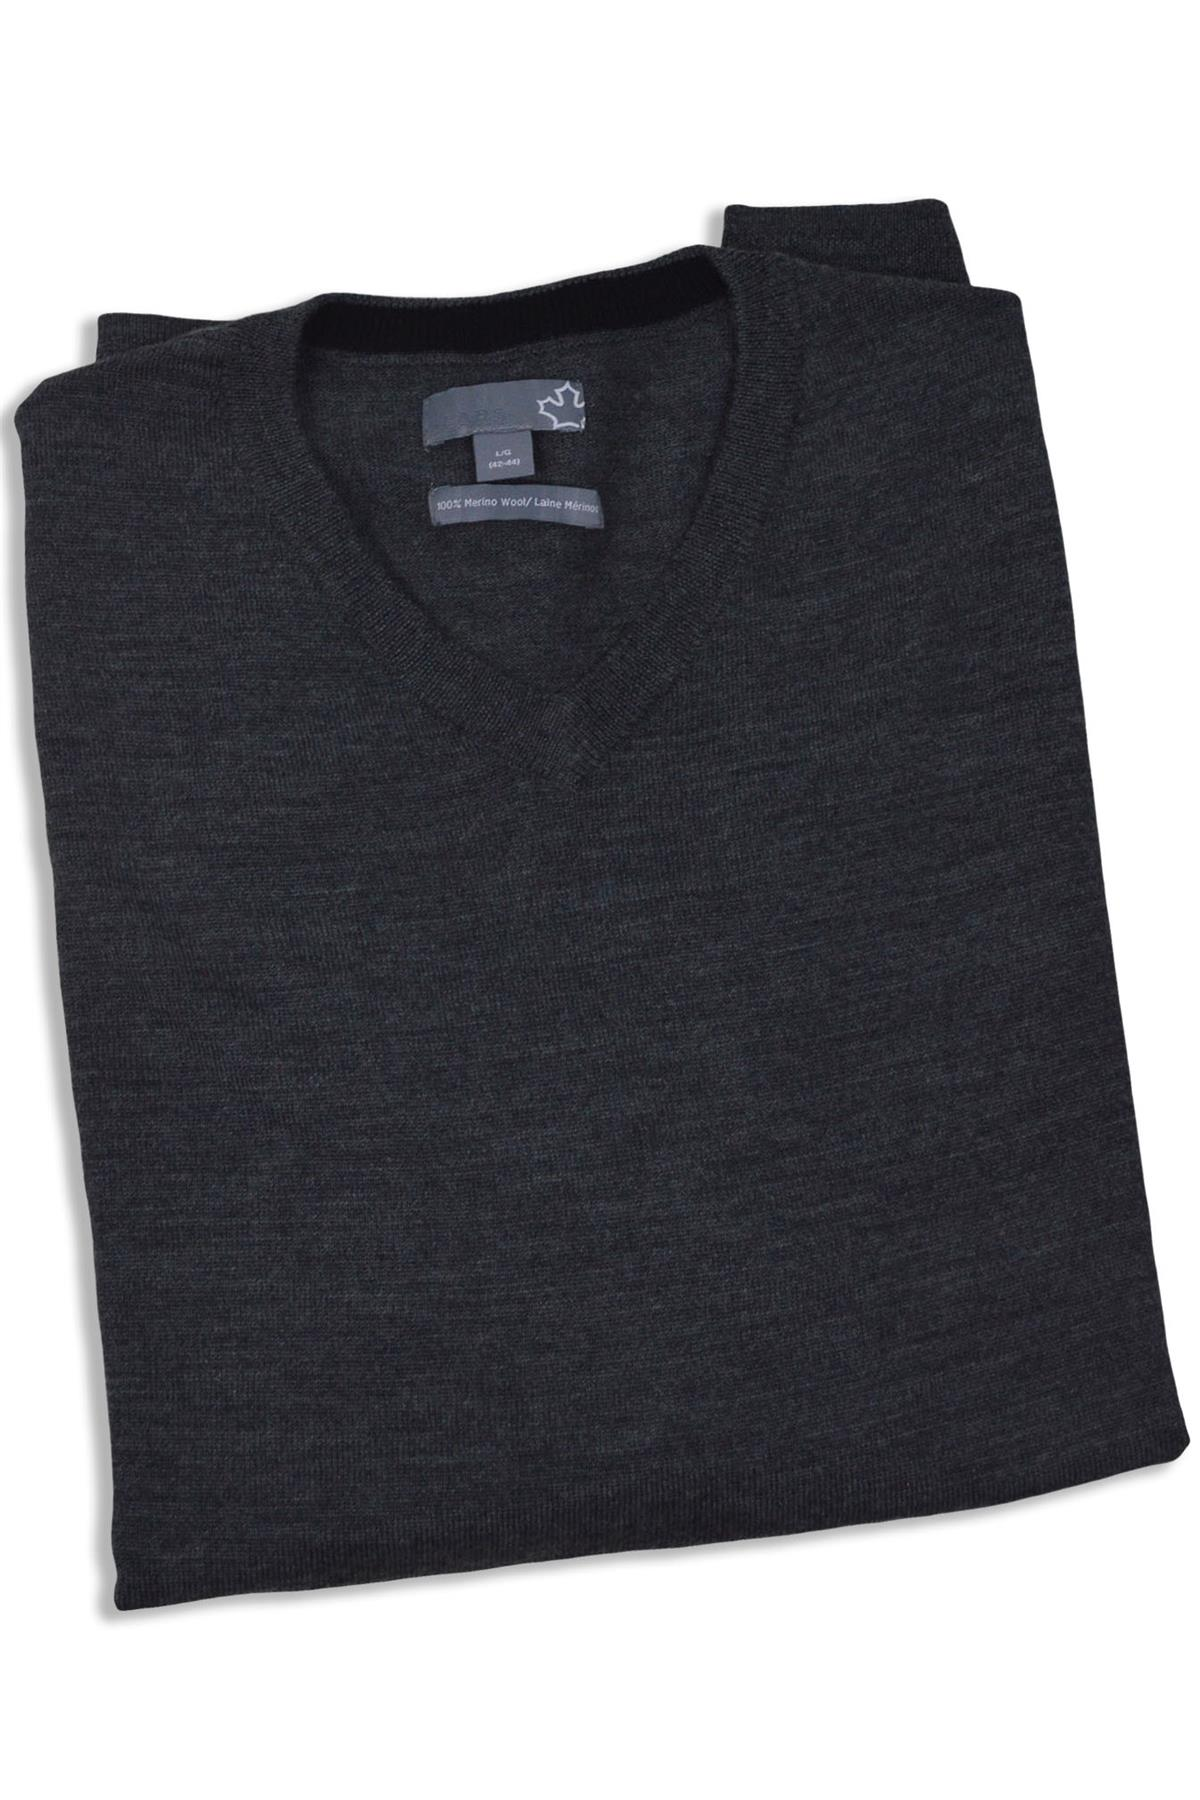 SEARS-Mens-Pure-Merino-Wool-V-Neck-Jumper-Pullover-Super-Quality thumbnail 15